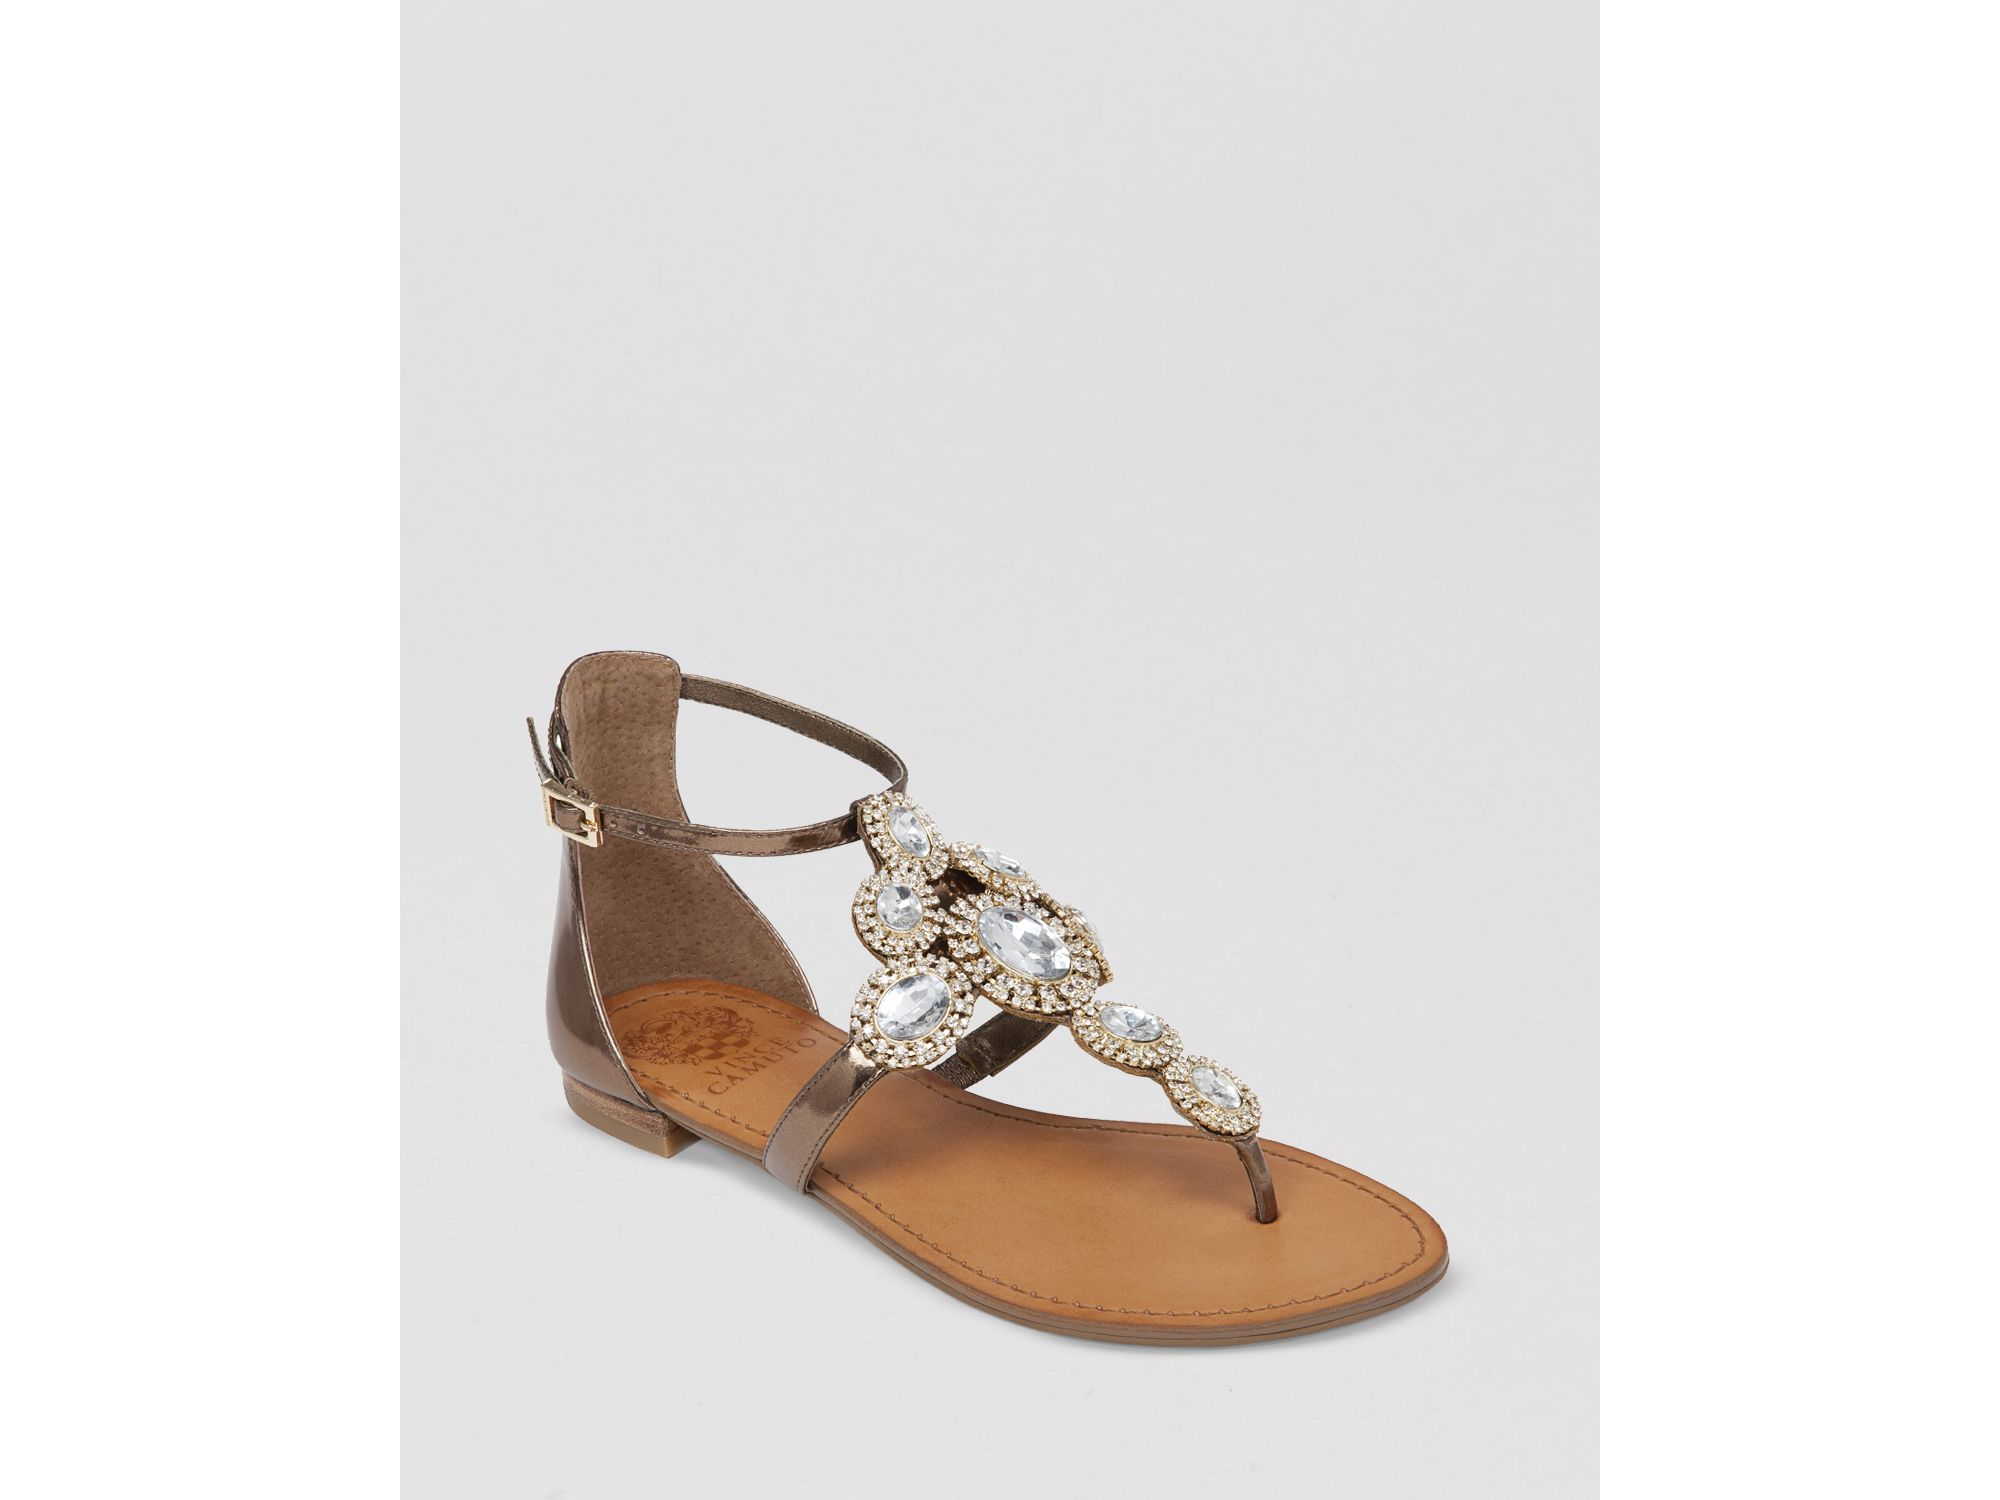 213ea8ca6 Lyst - Vince Camuto Jeweled Thong Flat Sandals - Manelle in Metallic